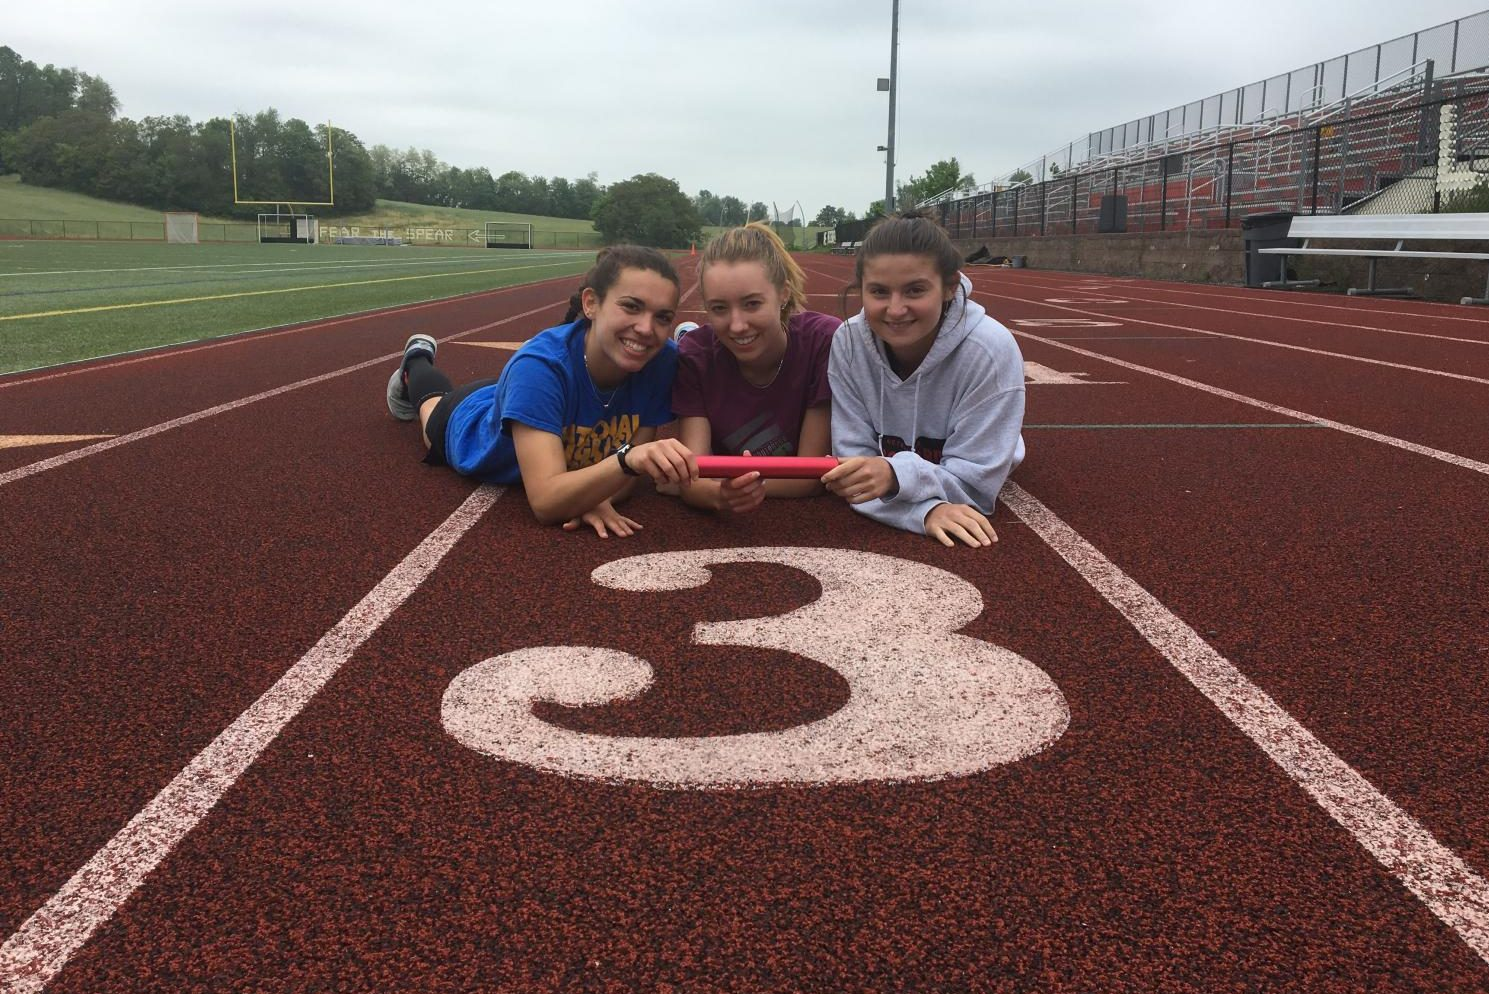 Seniors Morgan Matthews, Khelsa Connolly, and Savannah Sitler pose in front of lane three on the track with their relay baton.